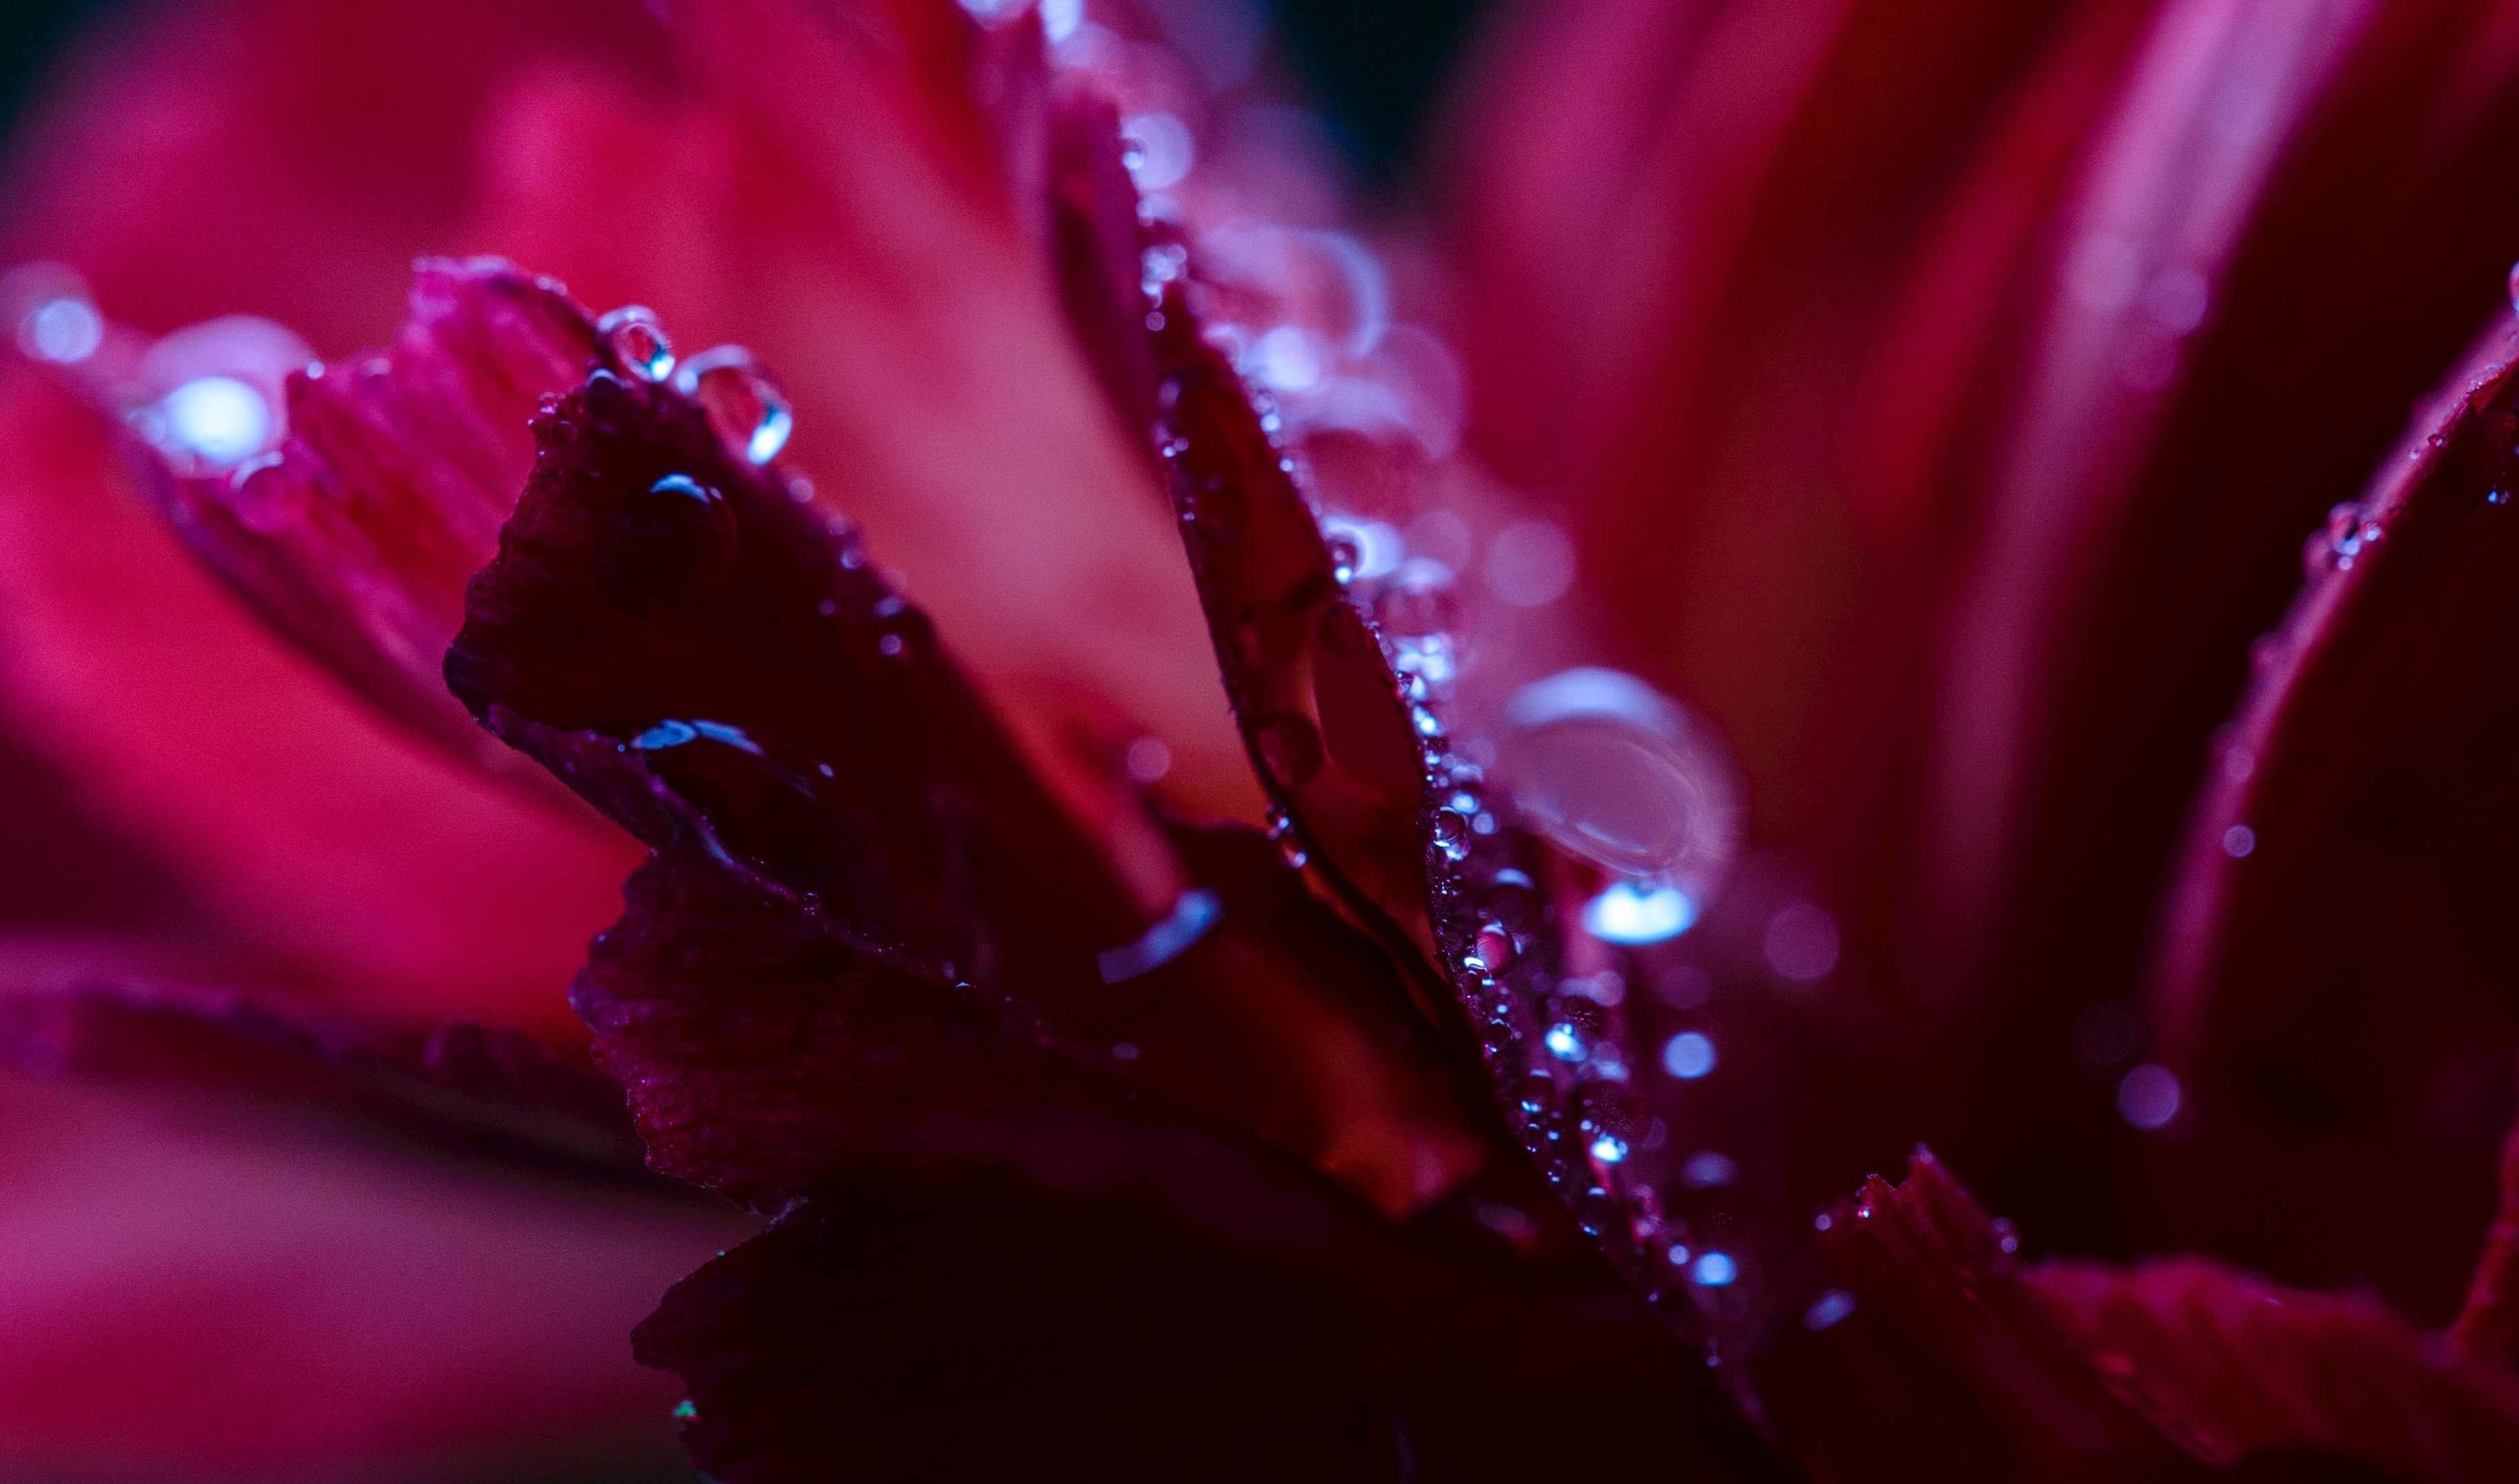 dew on the petals of a vermillion-colored rose